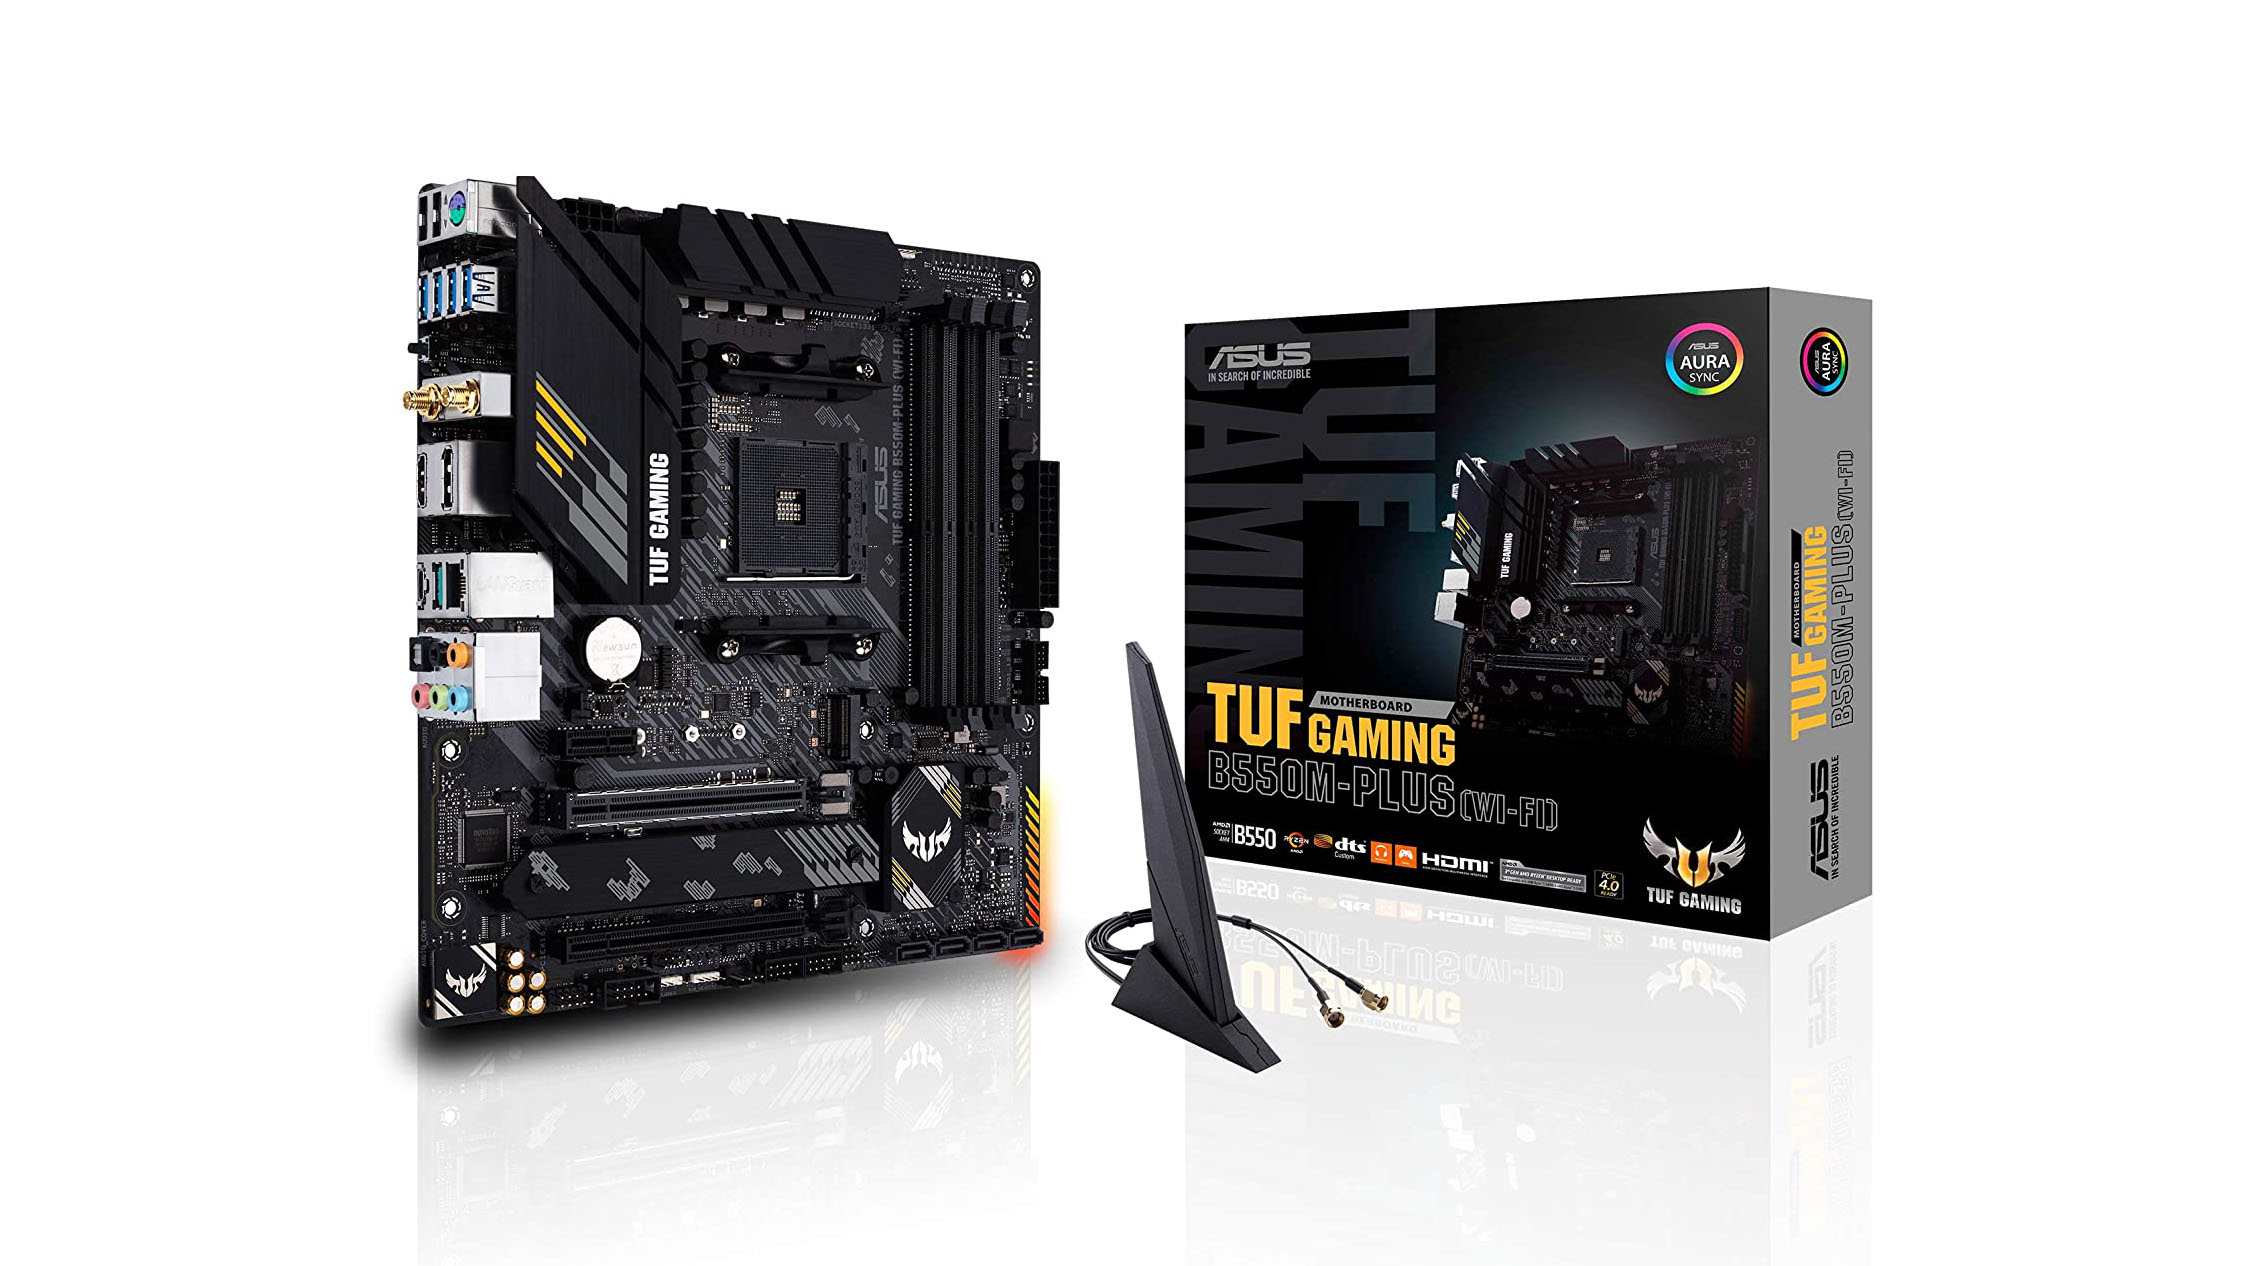 Best motherboards: Asus TUF Gaming B550M-PLUS